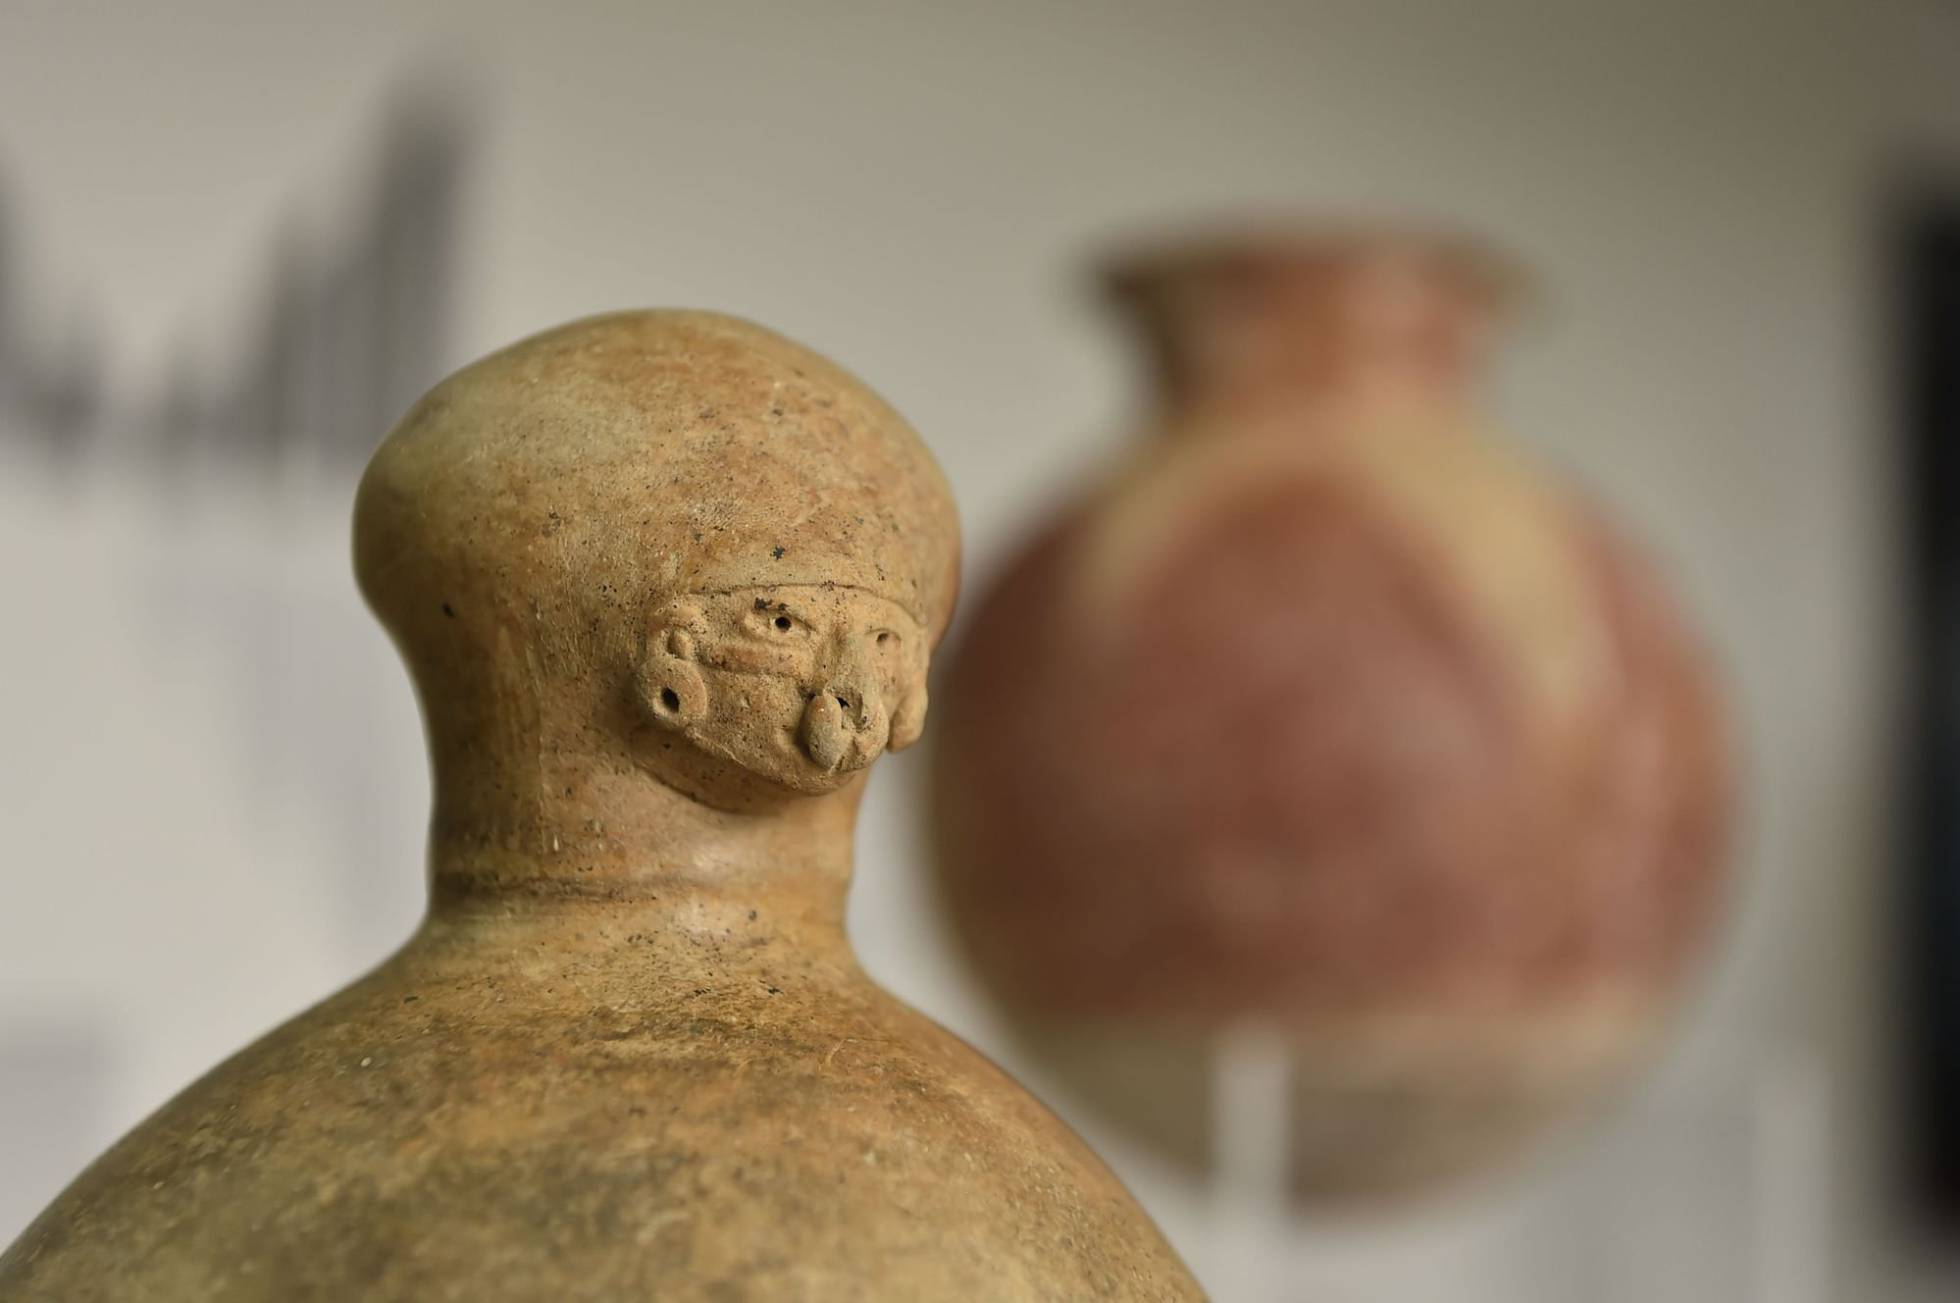 Archaeological pieces recovered by Ecuador are displayed at the National Museum in Quito on July 25, 2018. The National Institute of Cultural Heritage (INPC) recovered 13 pre-Hispanic archaeological pieces which were to be auctioned in Germany. The statues and vessels had been acquired by a private collector and taken illegally to Germany. AFP PHOTO Rodrigo BUENDIA